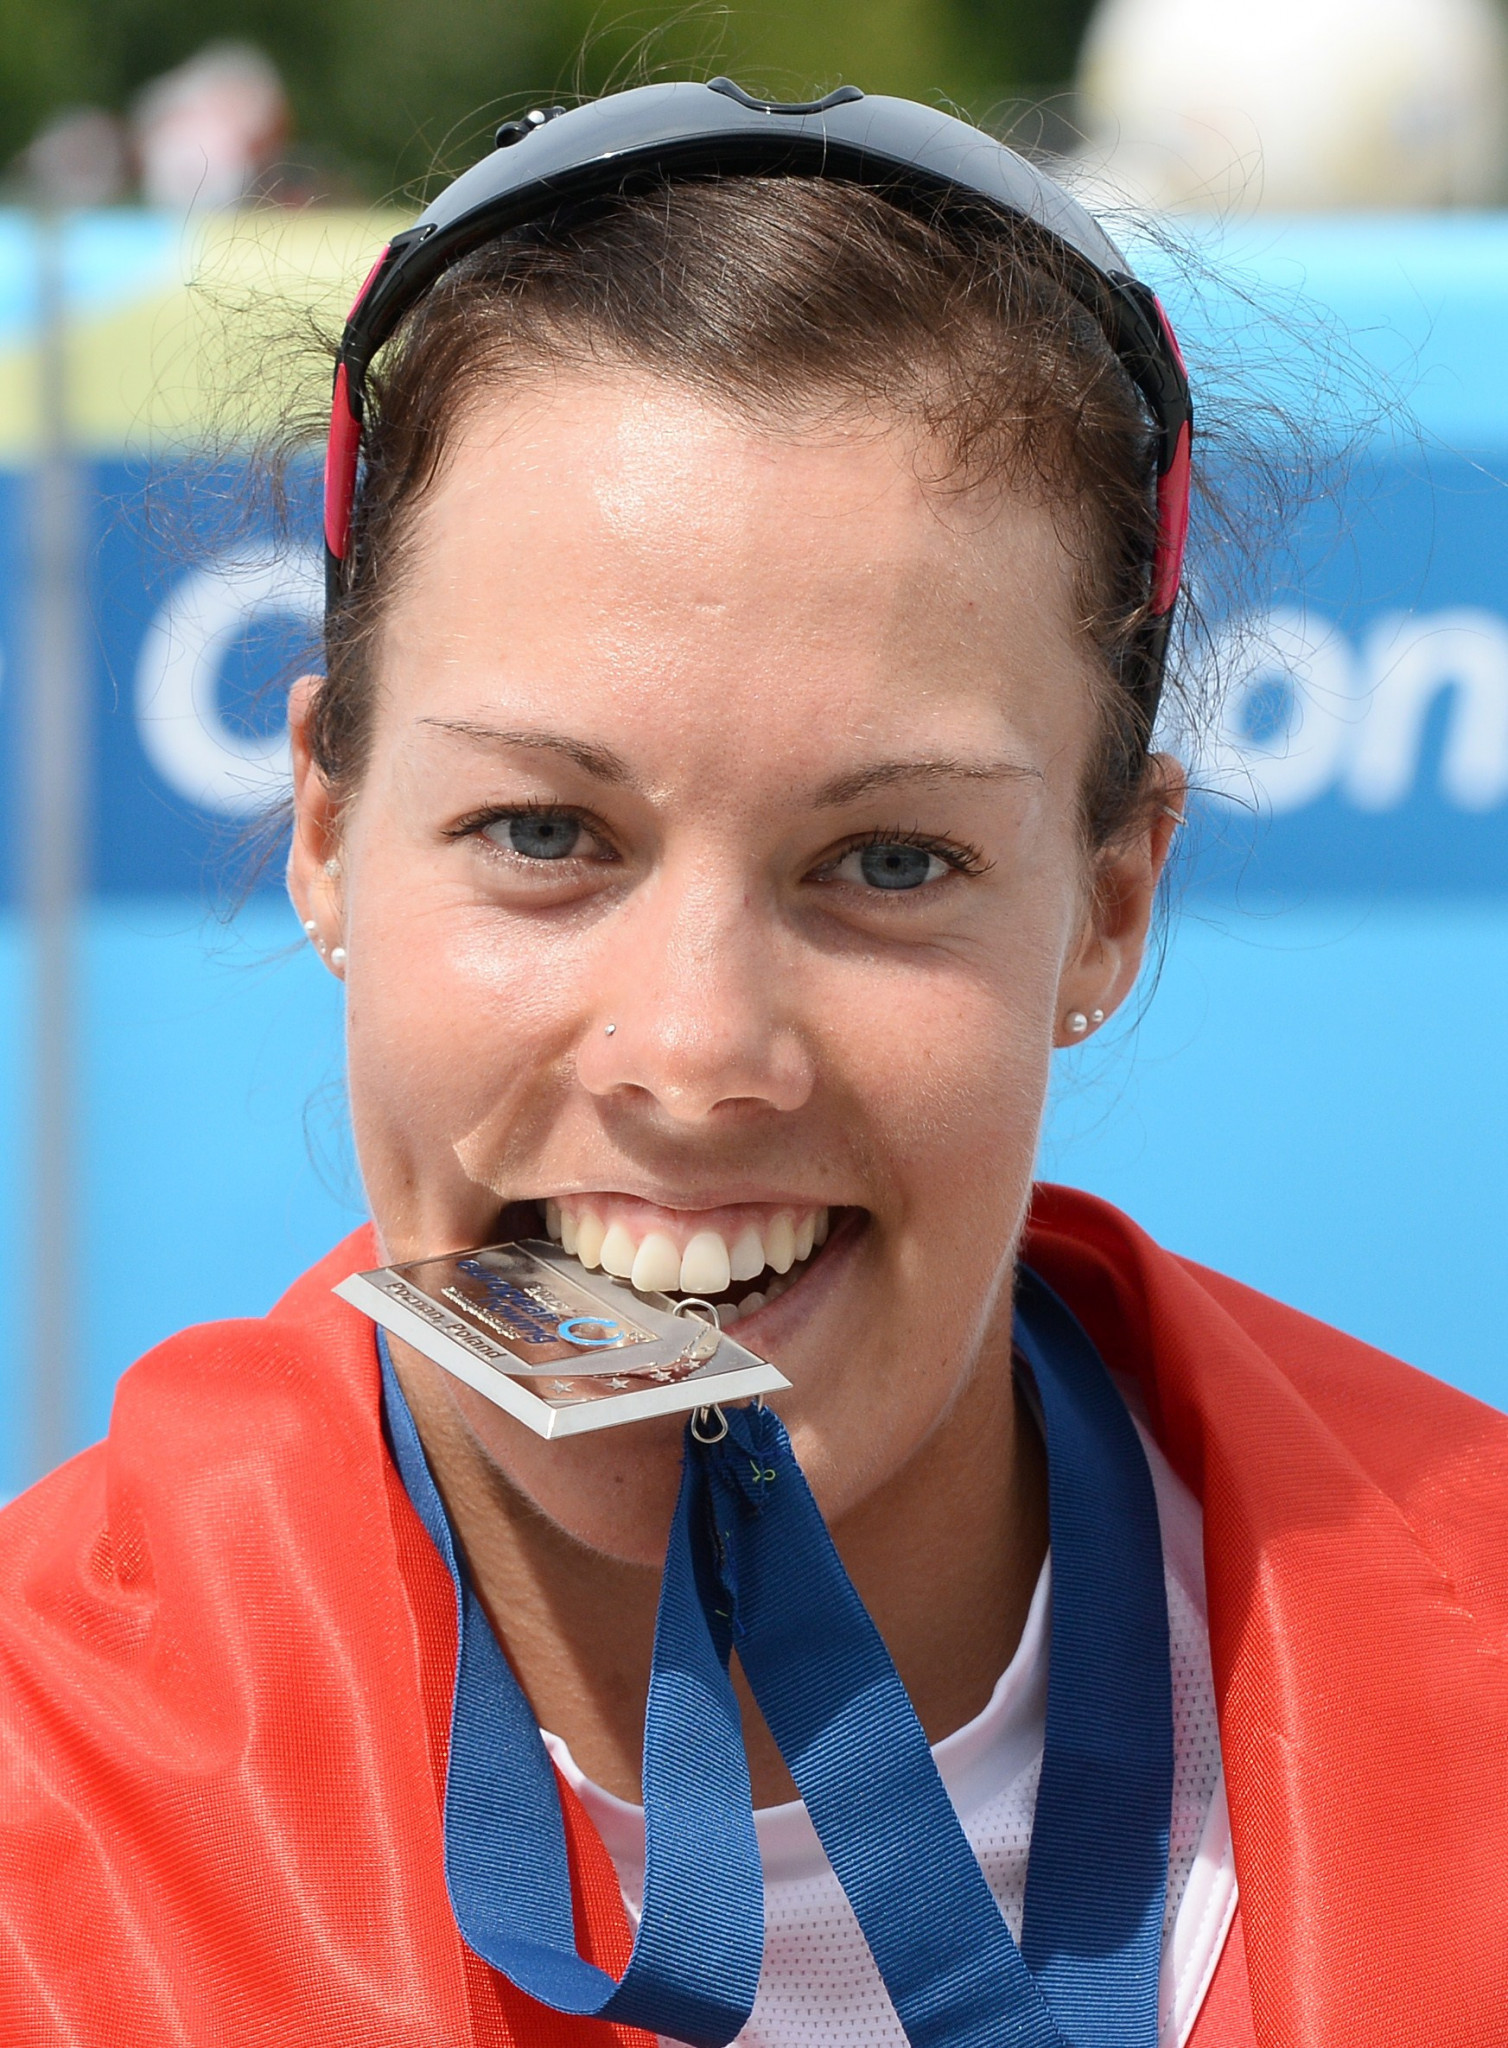 Jeannine Gmelin, of Switzerland, is among the Finalists for the 2017 World Rowing Female Crew of the Year ©Getty Images